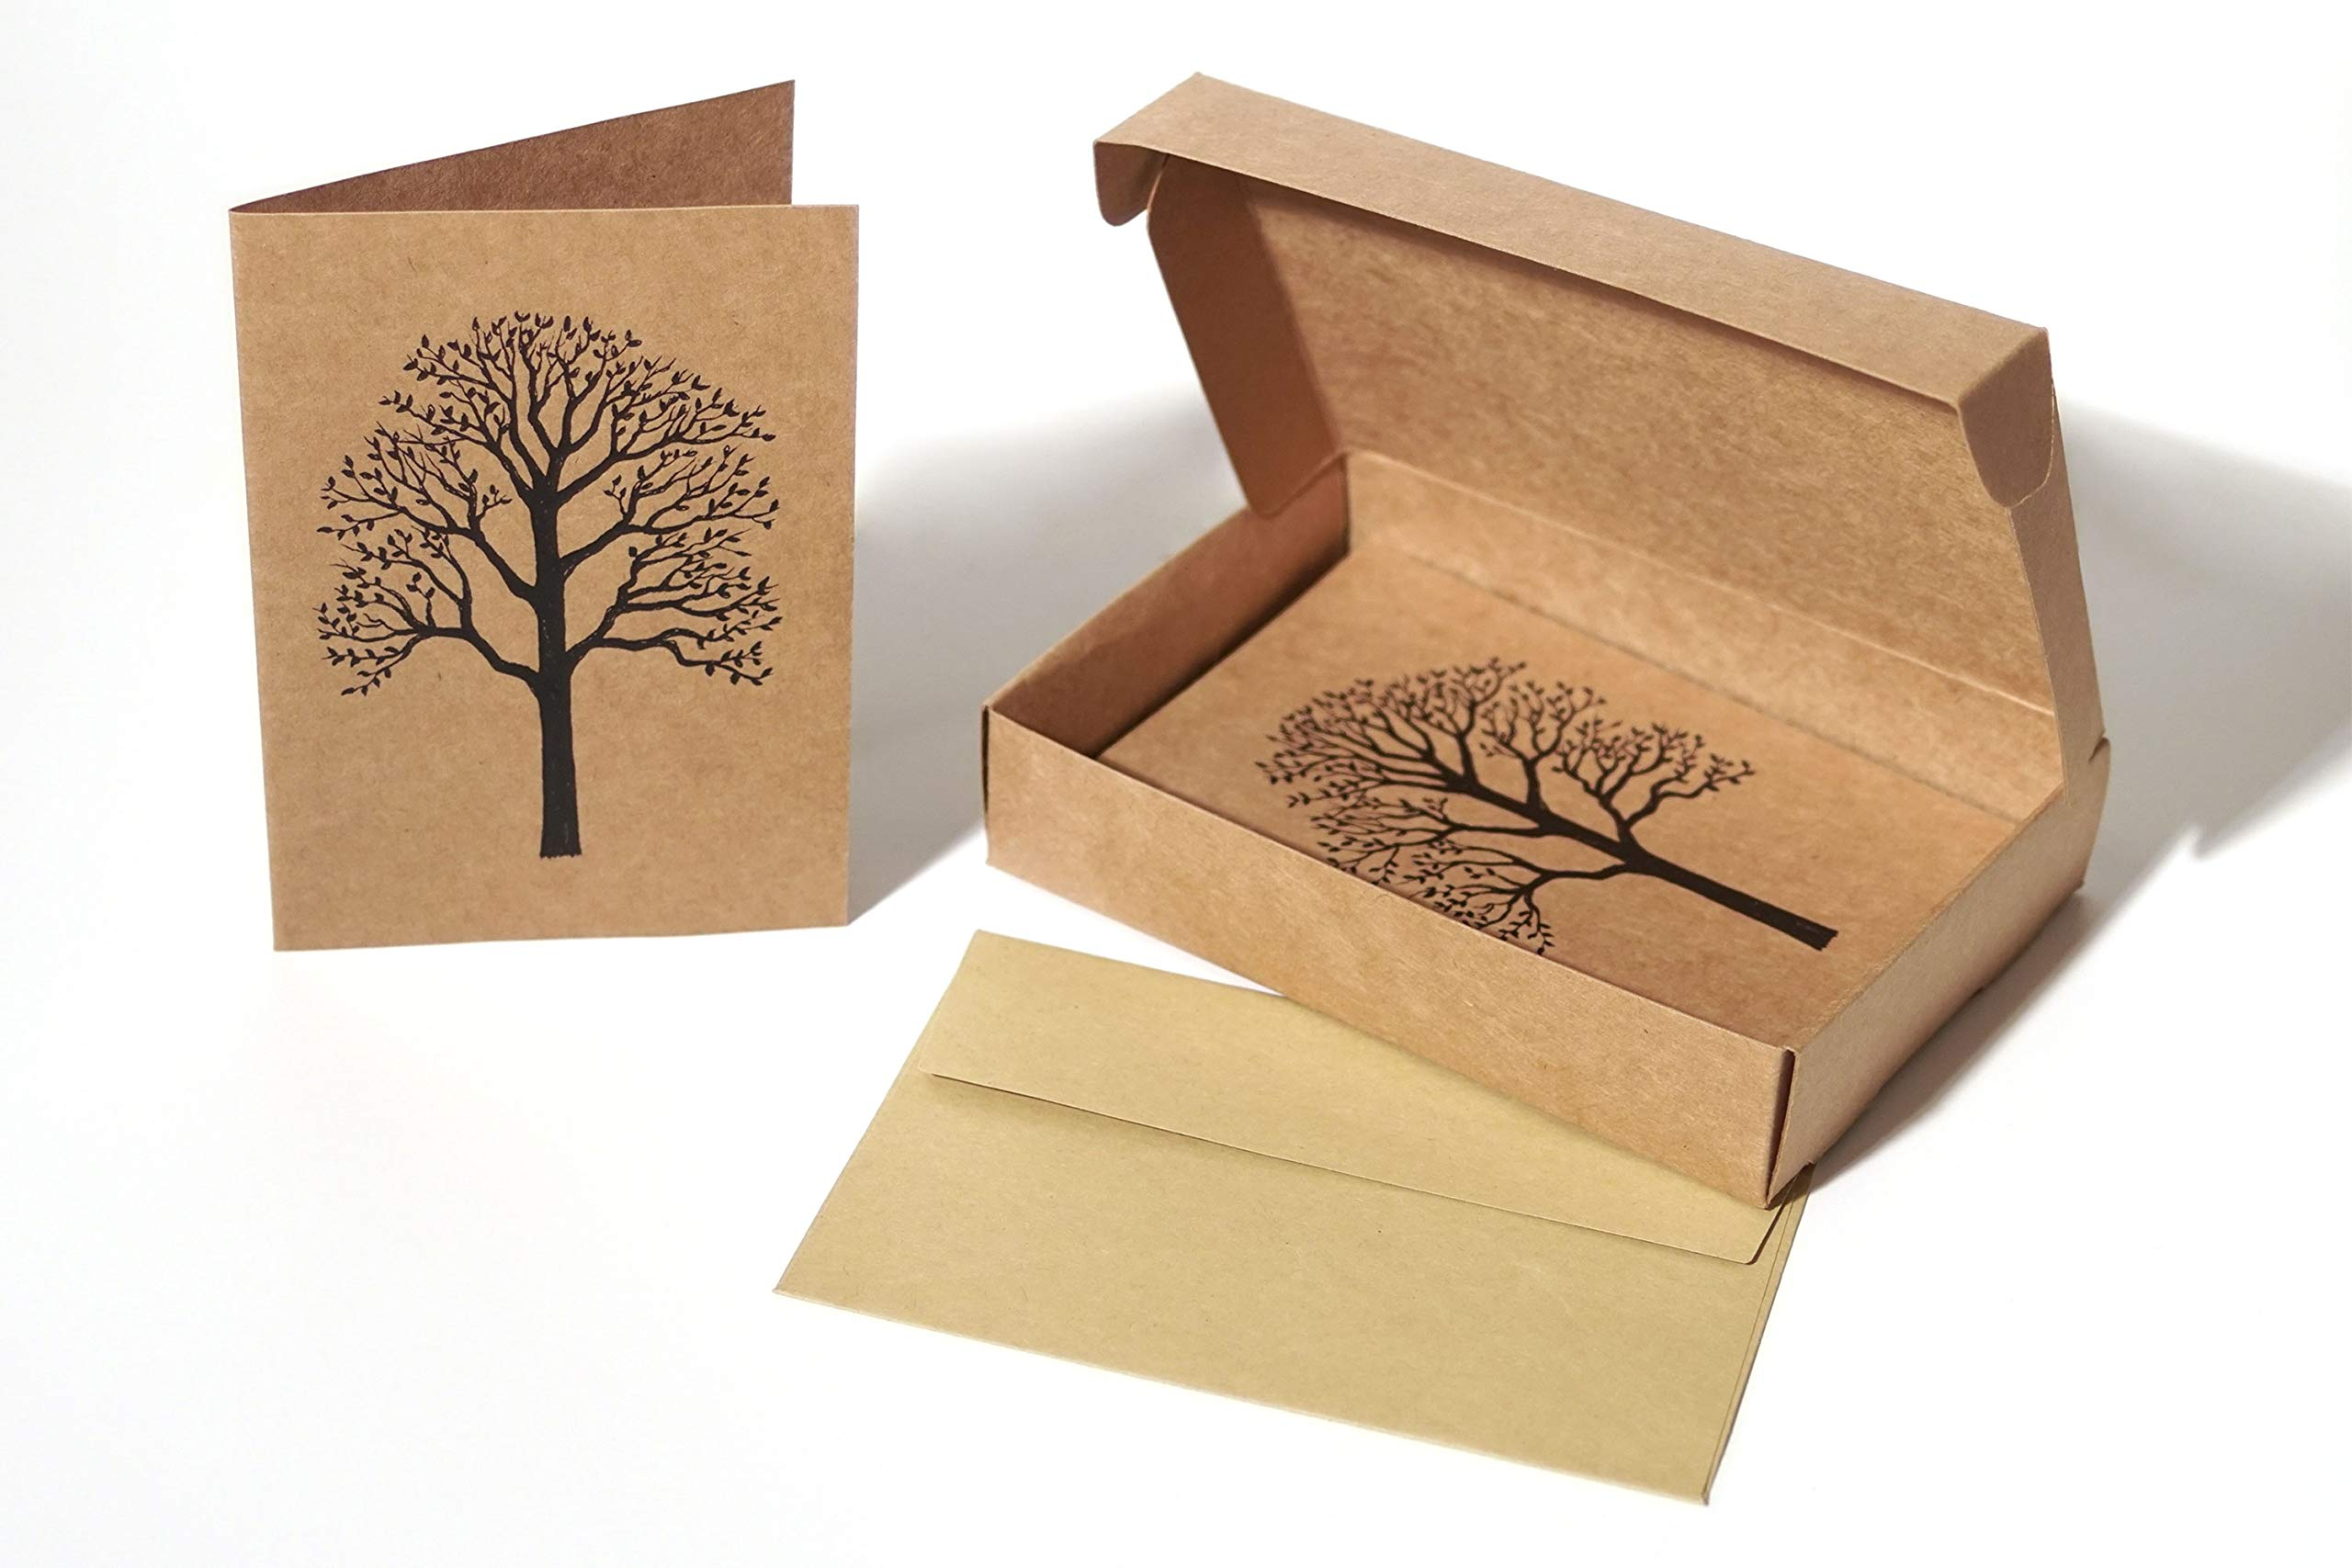 All Occasion Note Cards with Envelopes - Stationary Box Set of 20 Blank Kraft Paper Card Pack - 4 X 6 Recycled Cardstock Notecards with Natural Tree Design